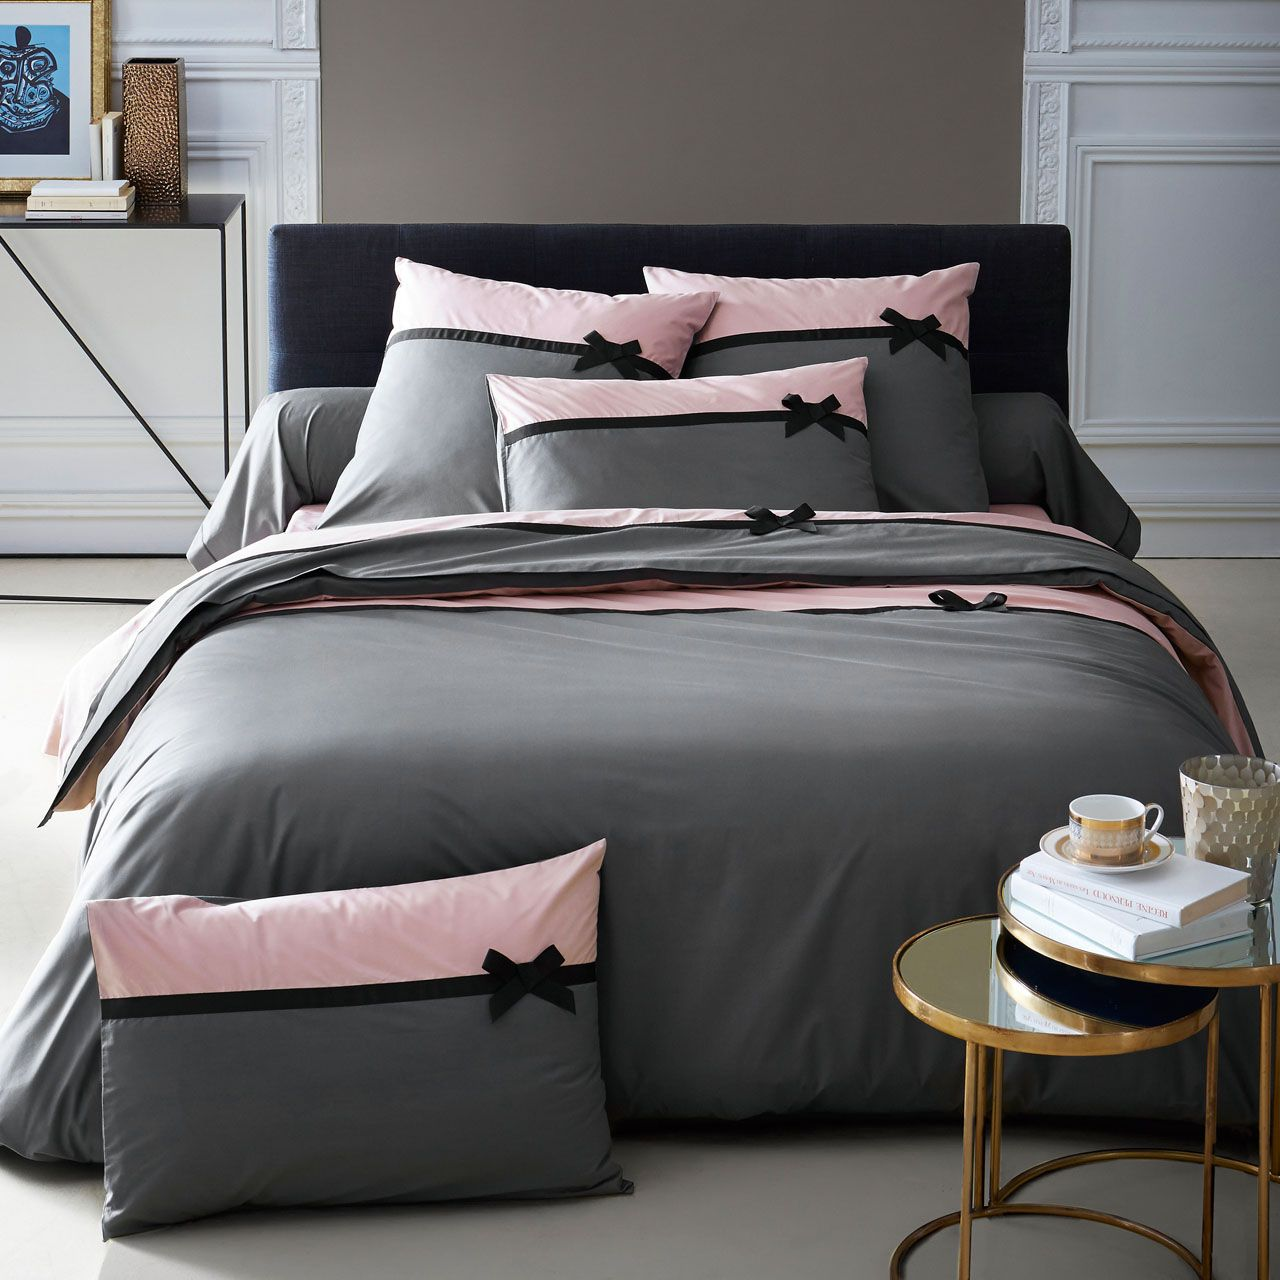 housse de couette percale frou frou anthracite 260x240. Black Bedroom Furniture Sets. Home Design Ideas